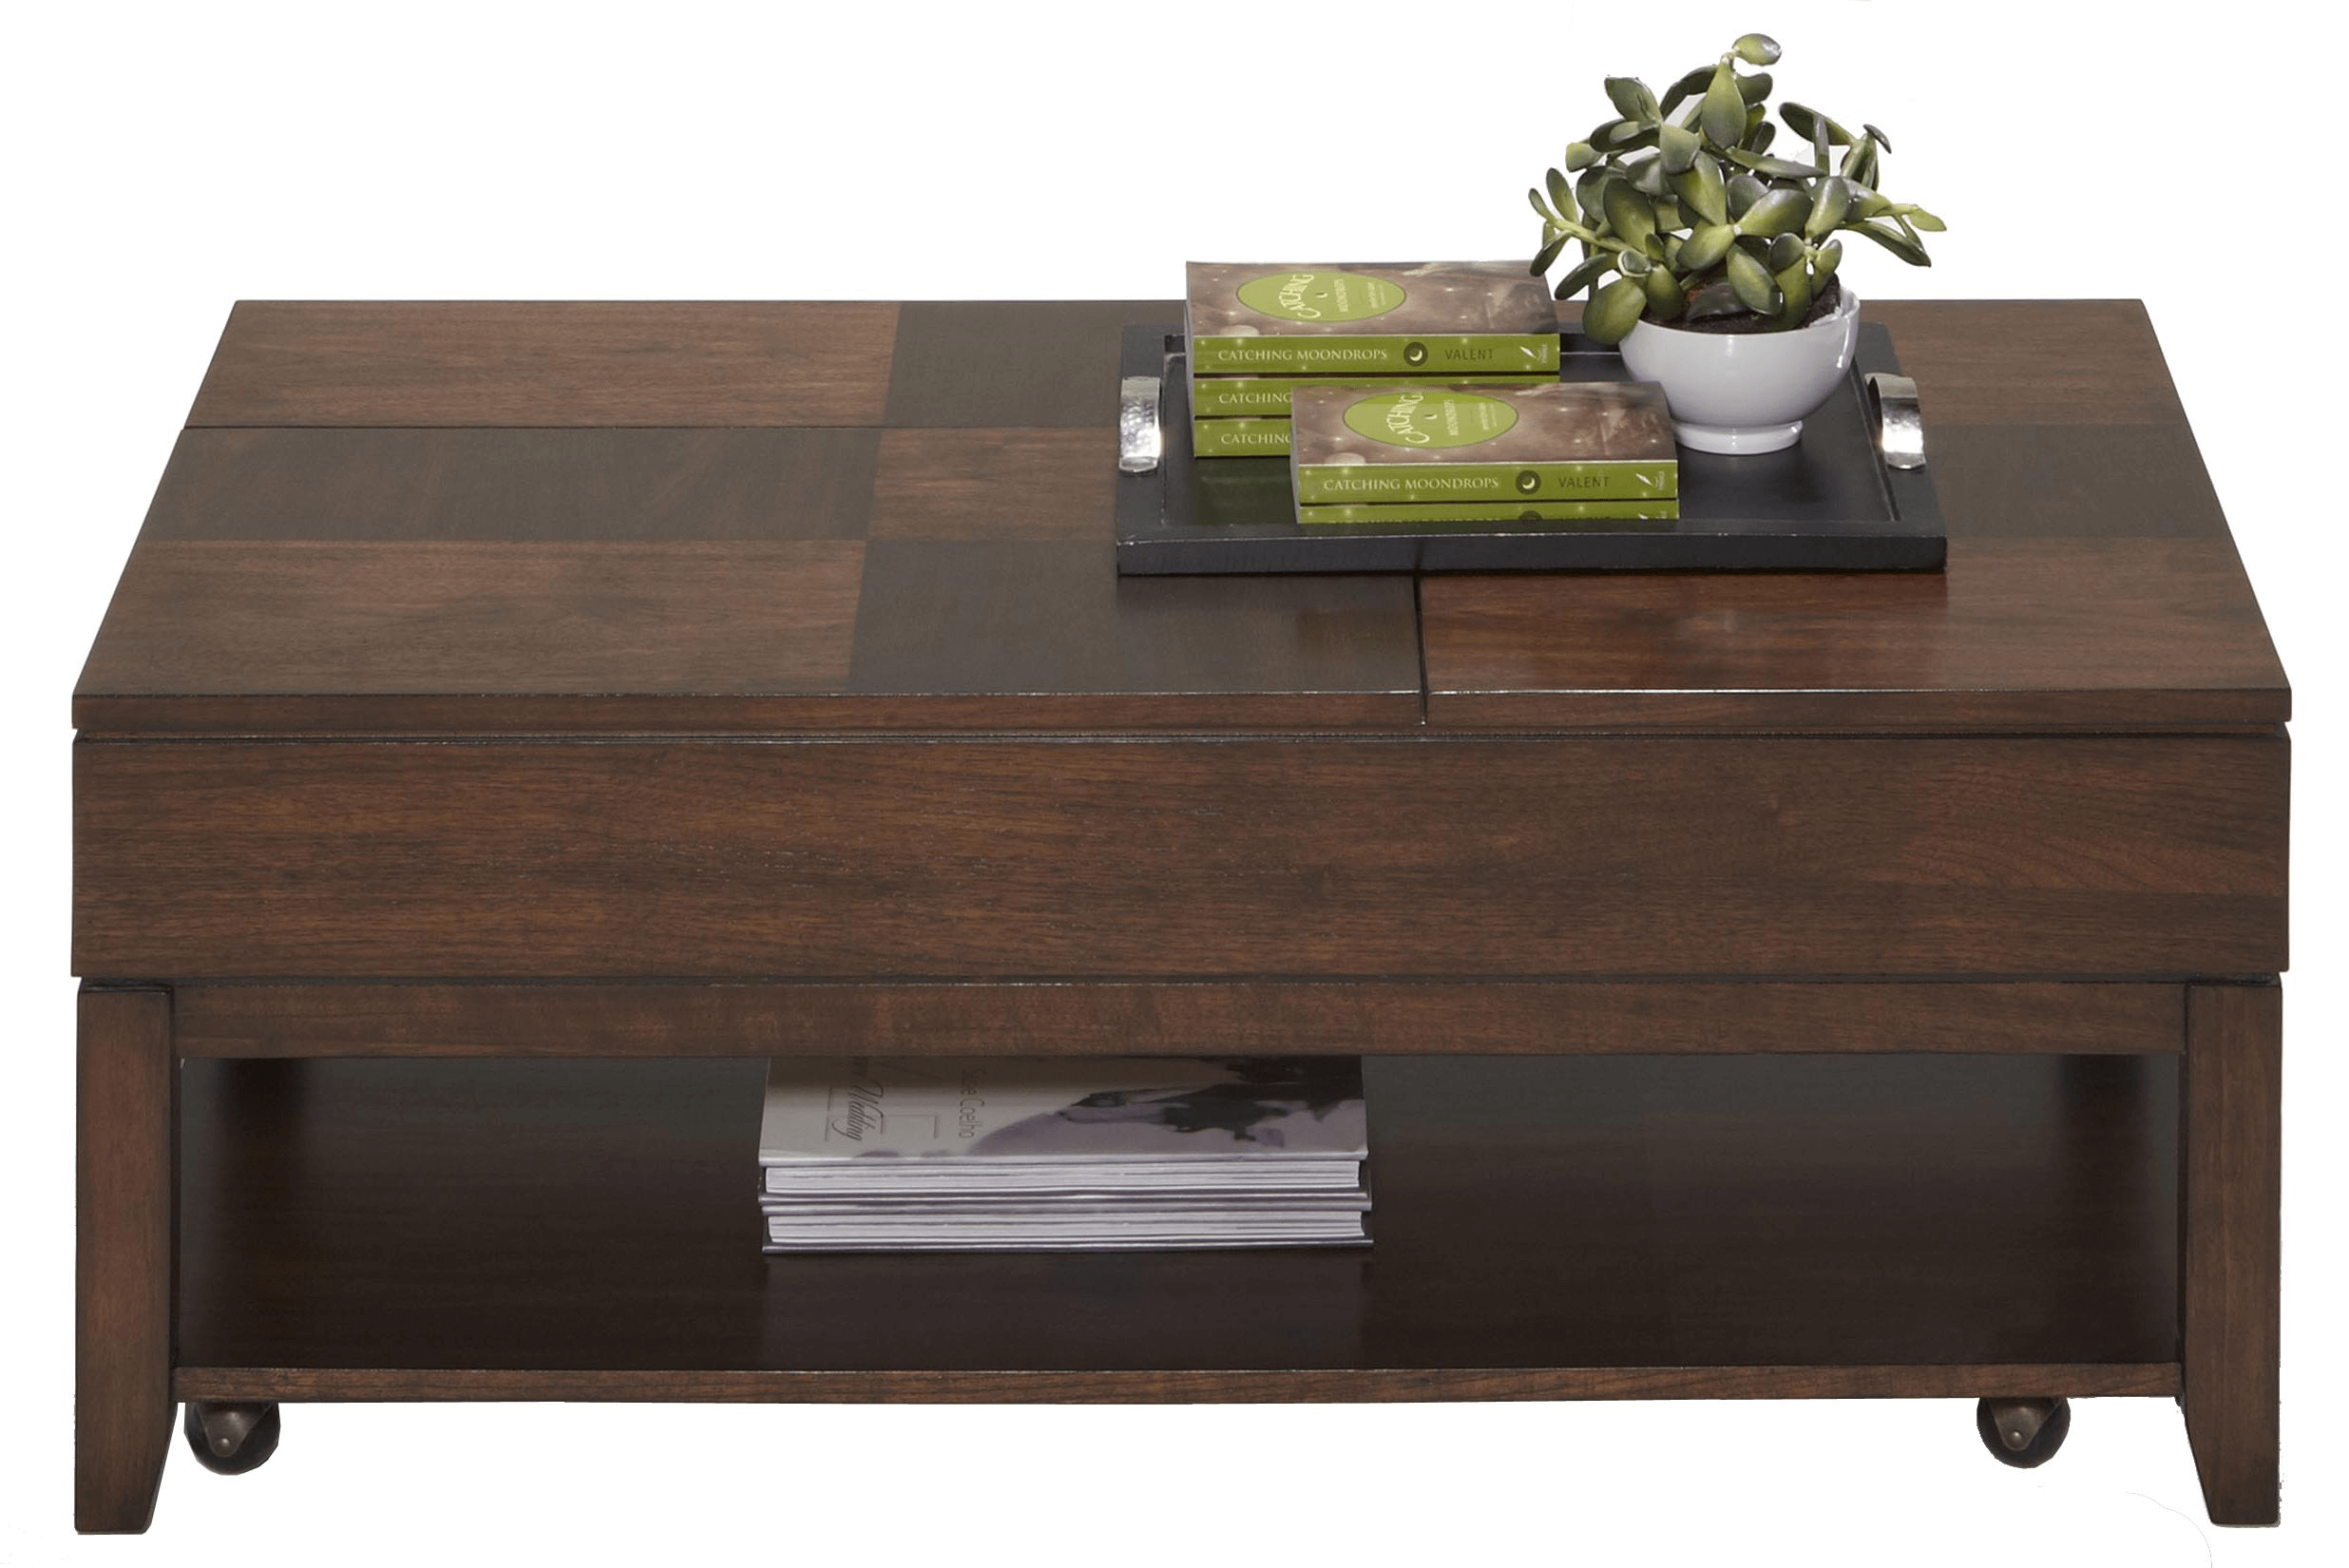 Daily Coffee Table with Double Lift-Top Ideas